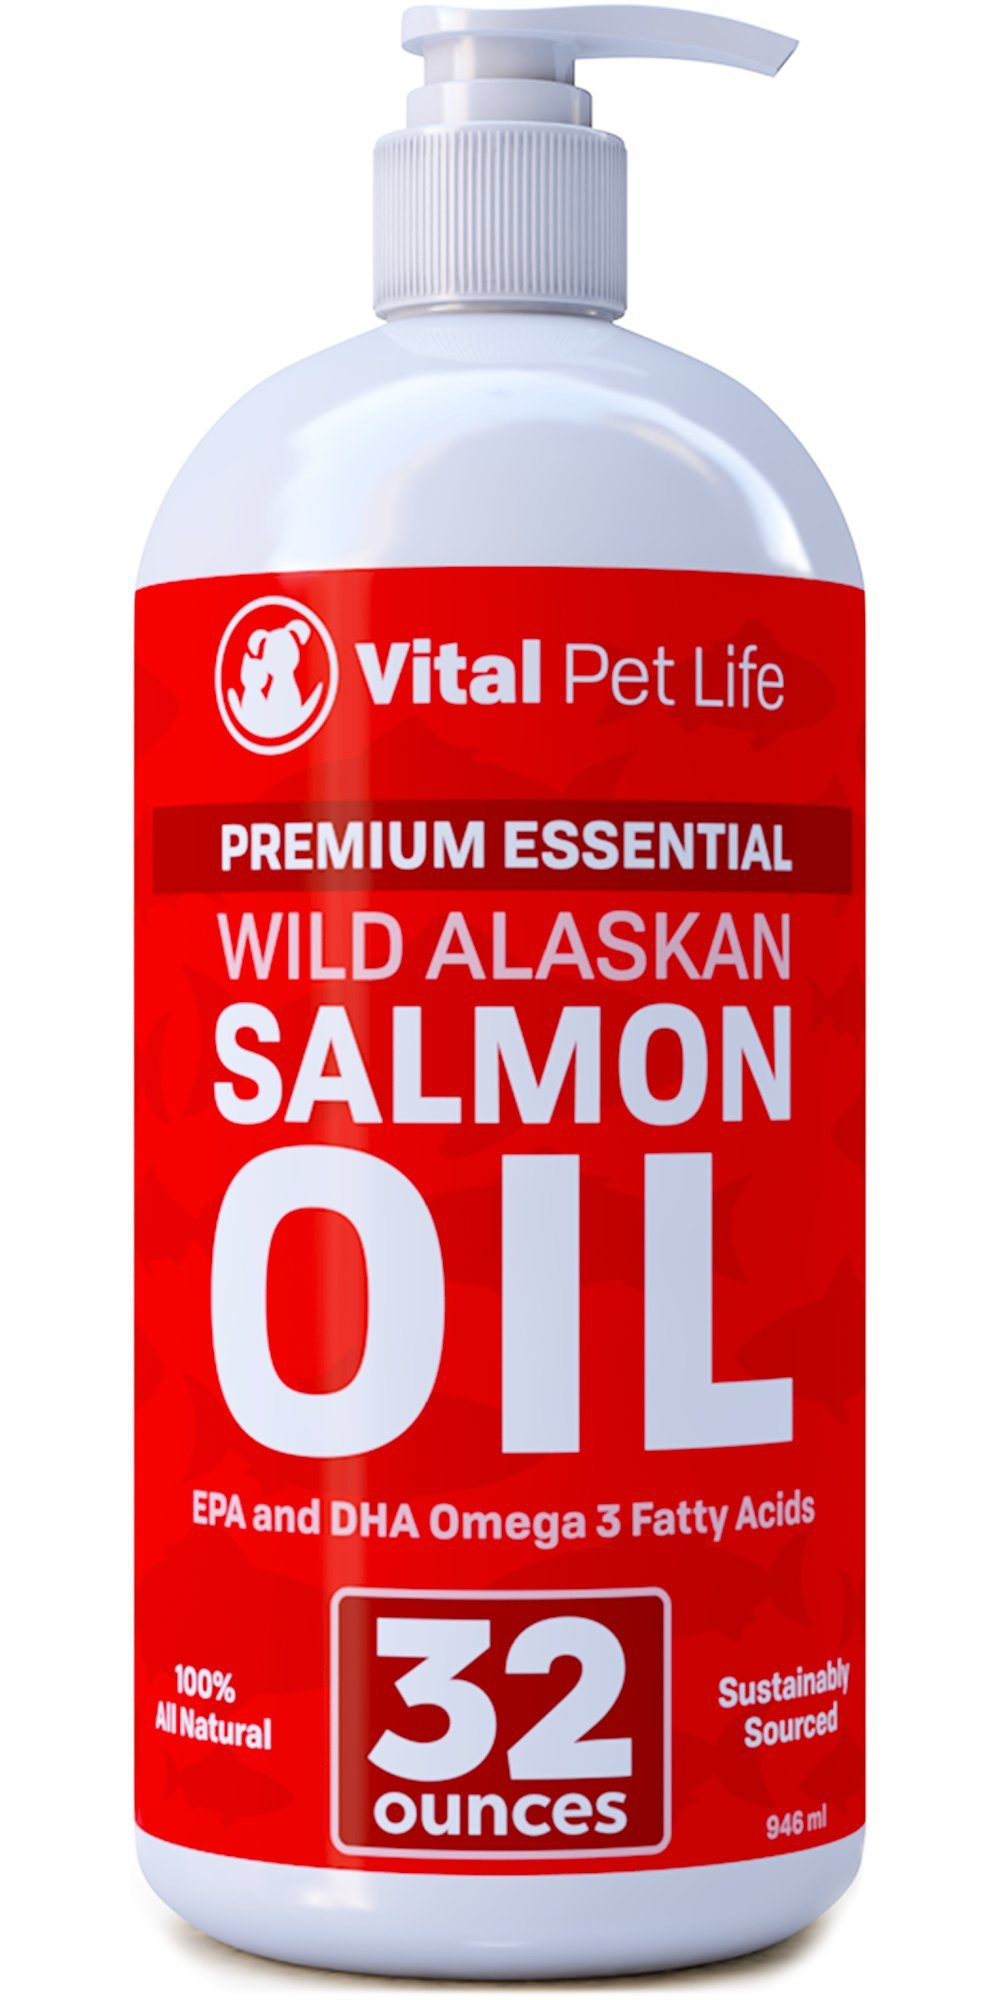 Salmon Oil for Dogs, Cats, and Horses, Fish Oil Omega 3 Food Supplement for Pets, Wild Alaskan 100% All Natural, Helps Dry Skin, Allergies, and Joints, Promotes Healthy Coat, Helps Inflammation, 32 oz by Vital Pet Life